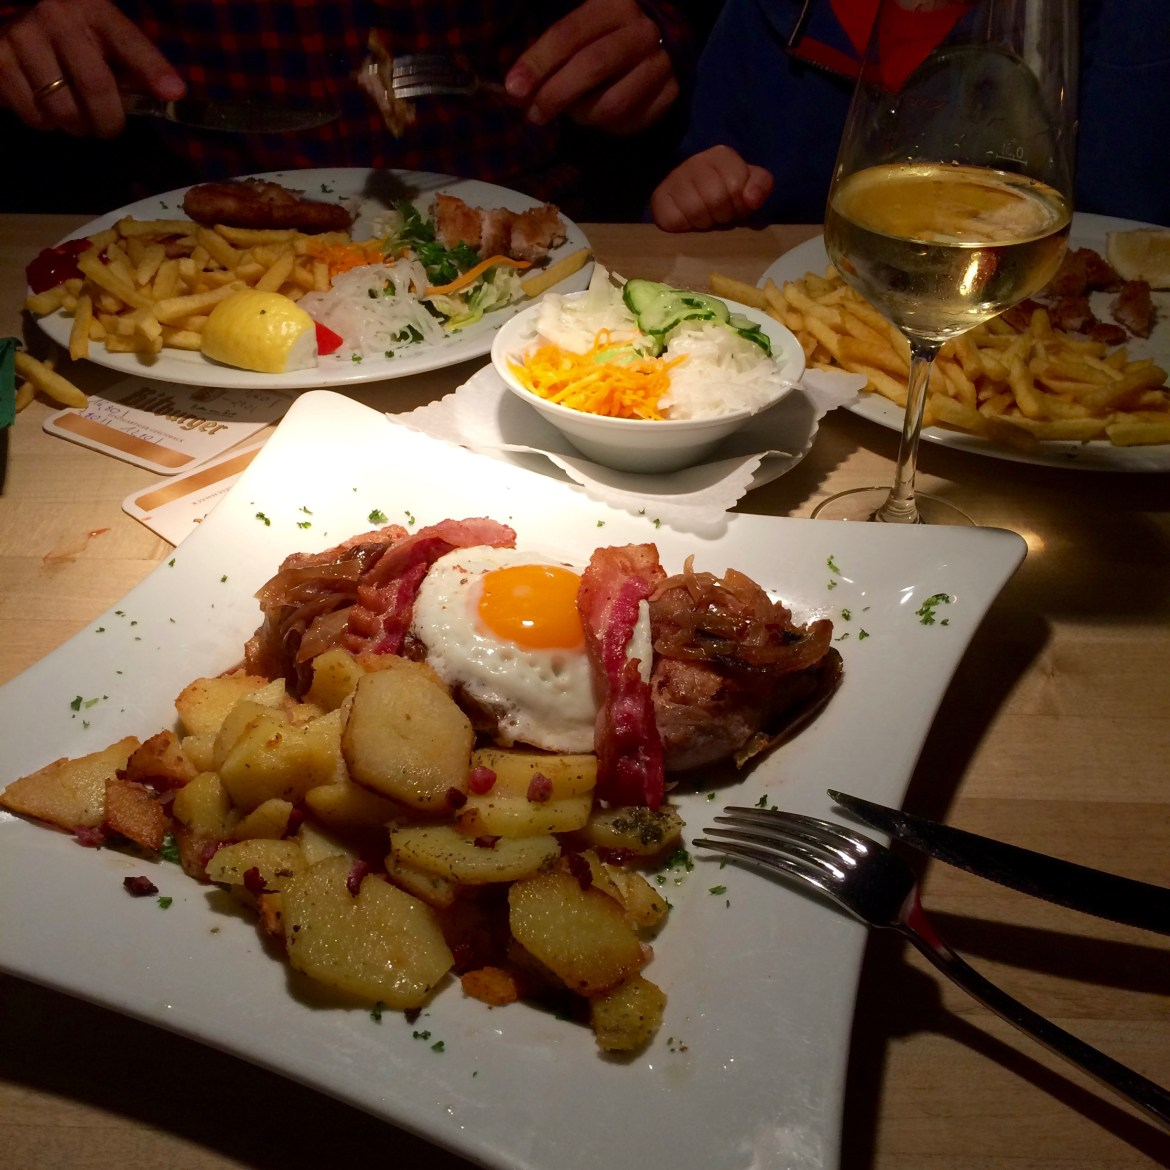 Plates of pork and potatoes in a German pub